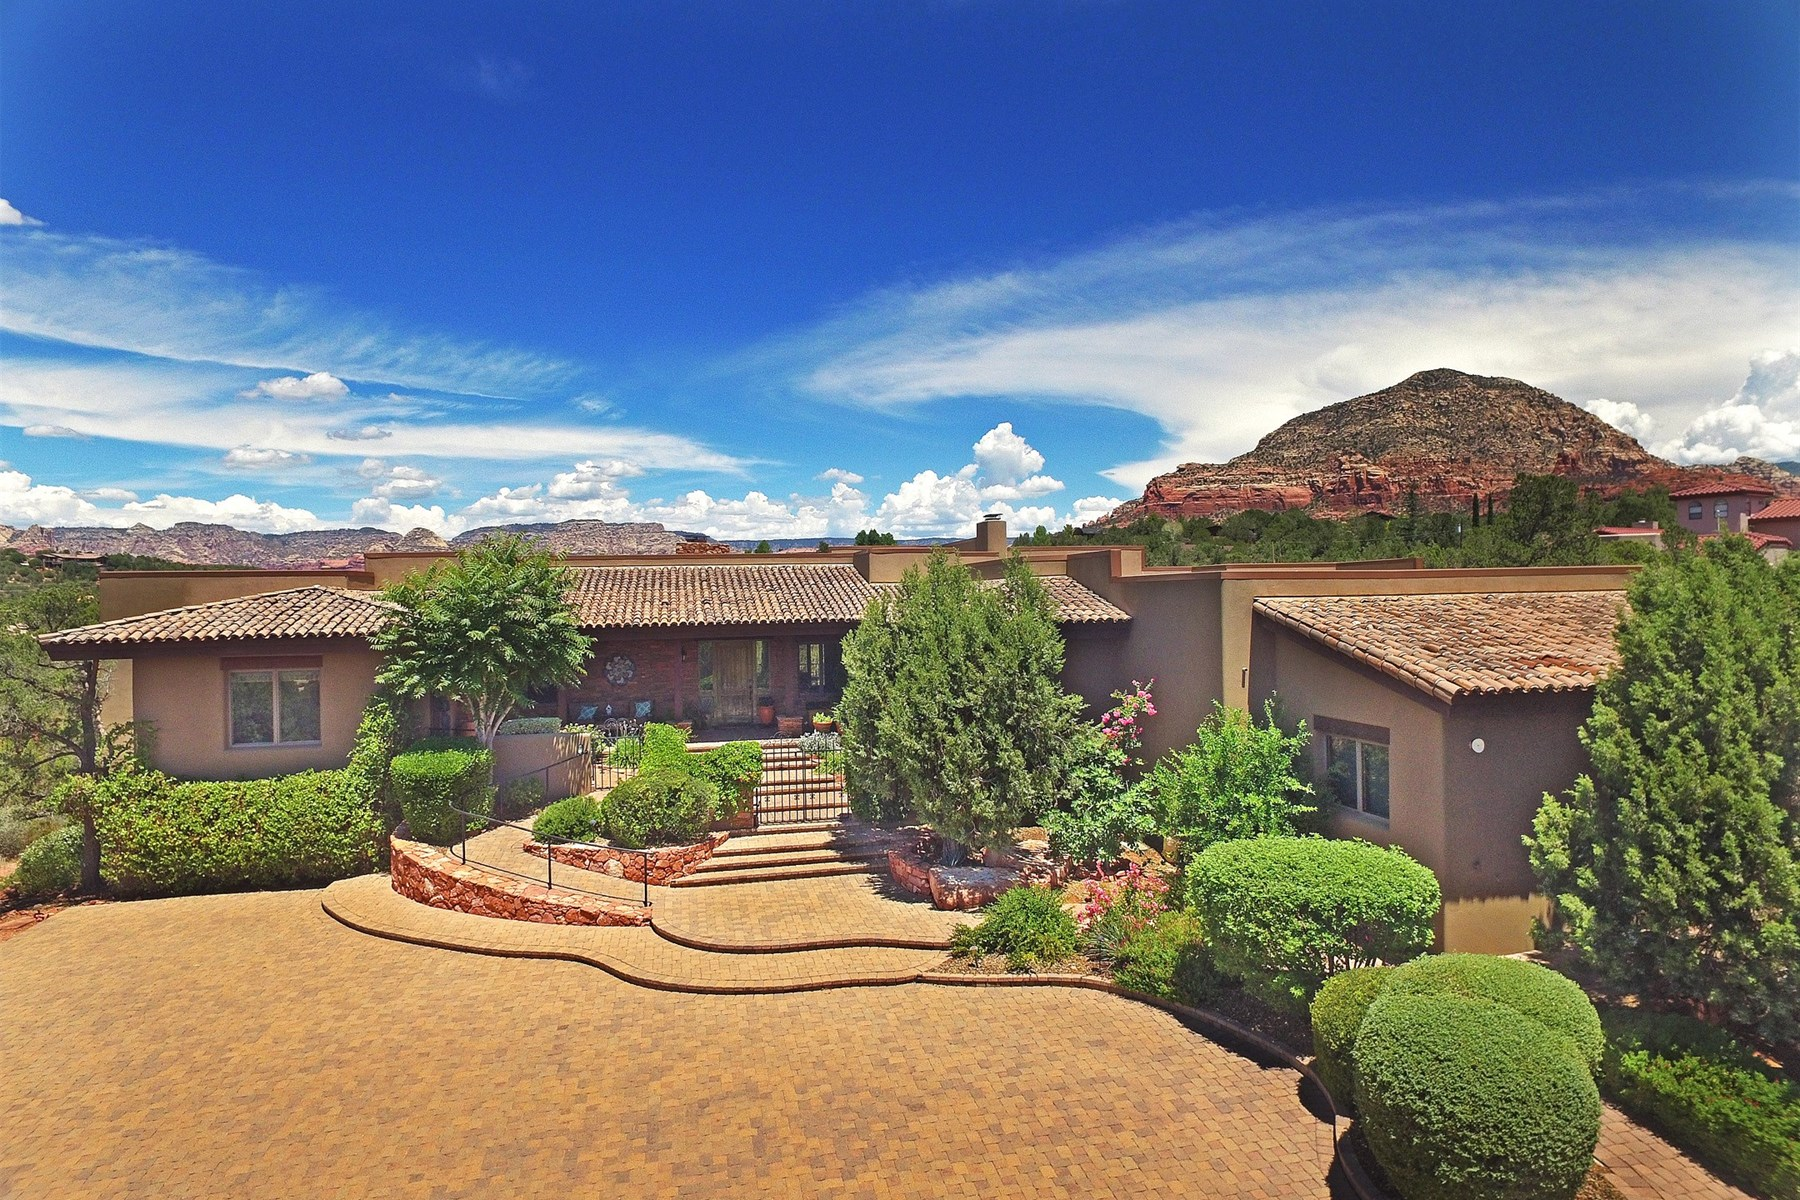 Maison unifamiliale pour l Vente à Gorgeous custom-designed luxury home 41 E Dove Wing Drive Sedona, Arizona, 86336 États-Unis